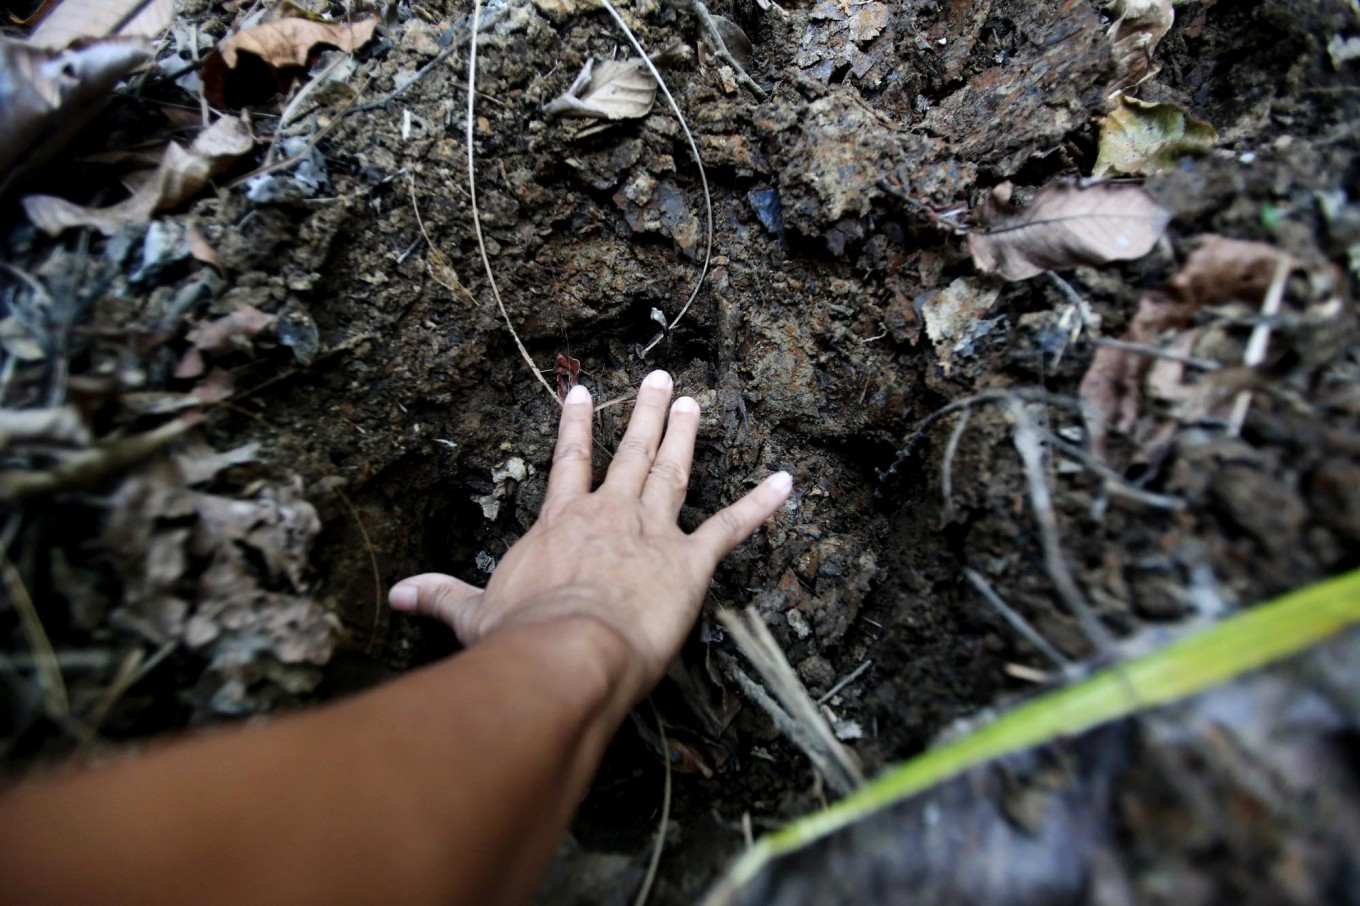 Fresh trace: A member of the monitoring unit measures the footprint of a Javan rhino, estimated to have passed through the area less than 24 hours ago. JP/Dhoni Setiawan